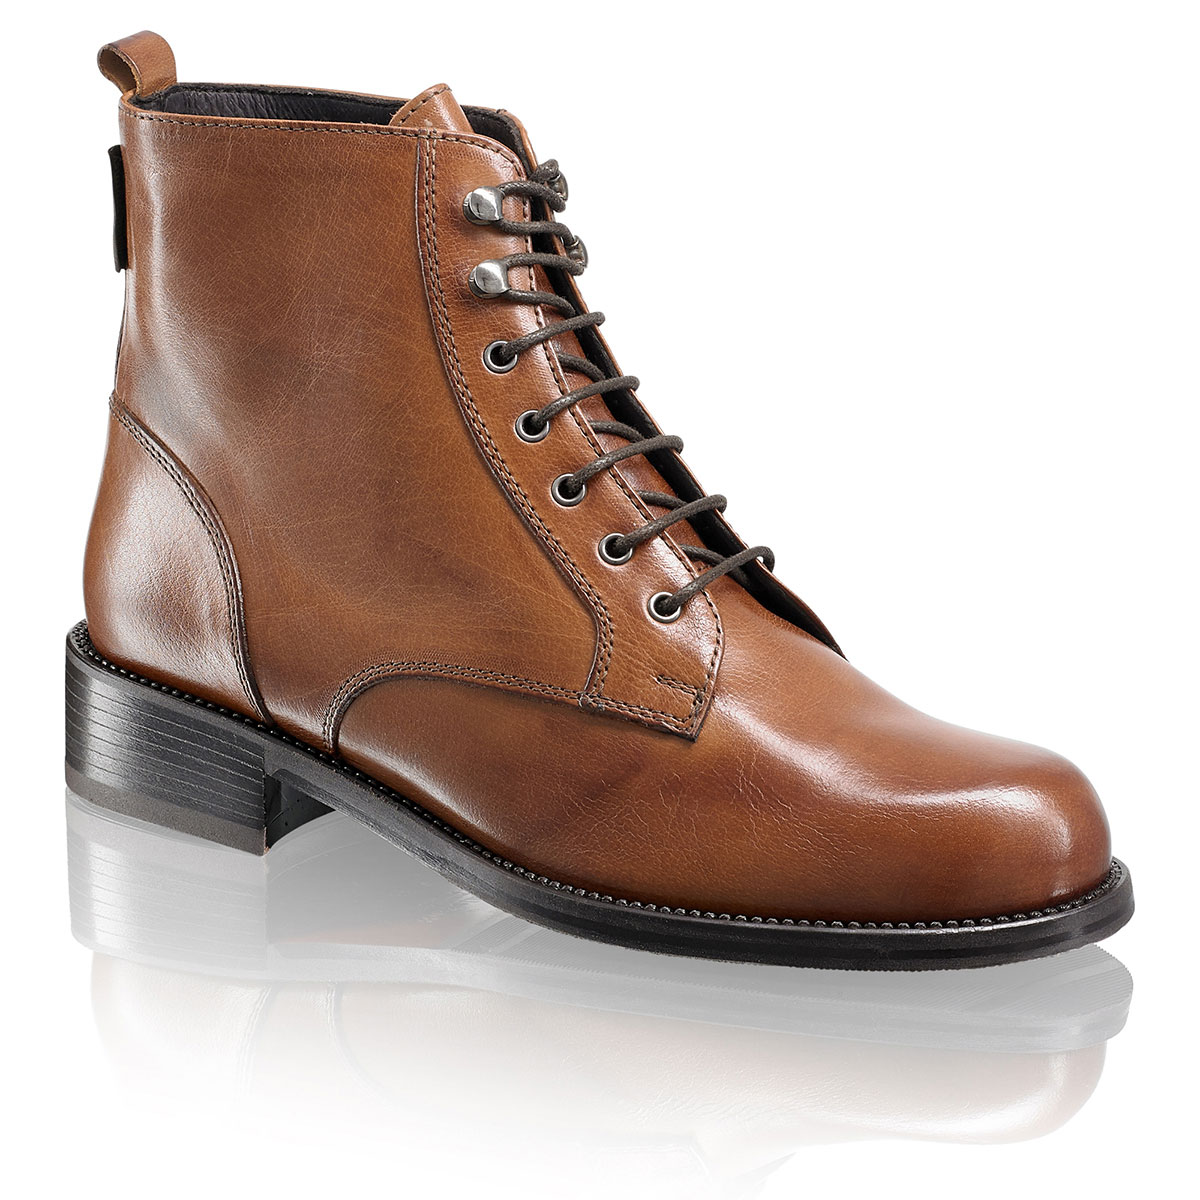 Russell and Bromley BELMONT Lace-Up Boot